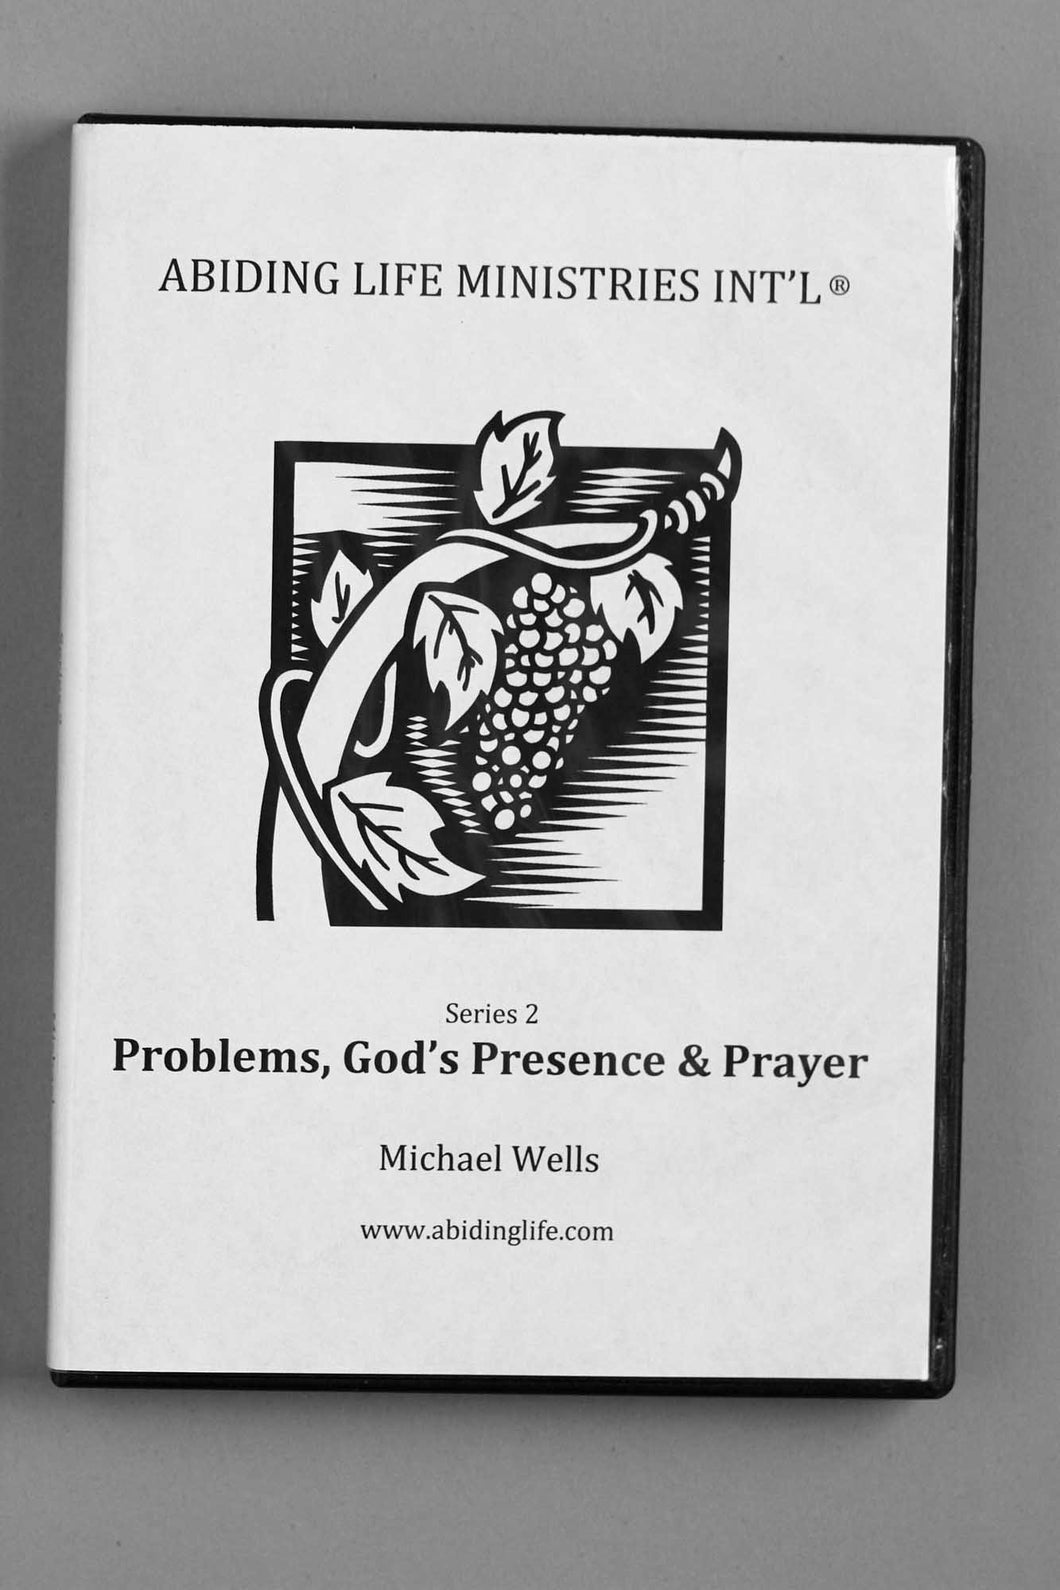 Problems, God's Presence, & Prayer MP3